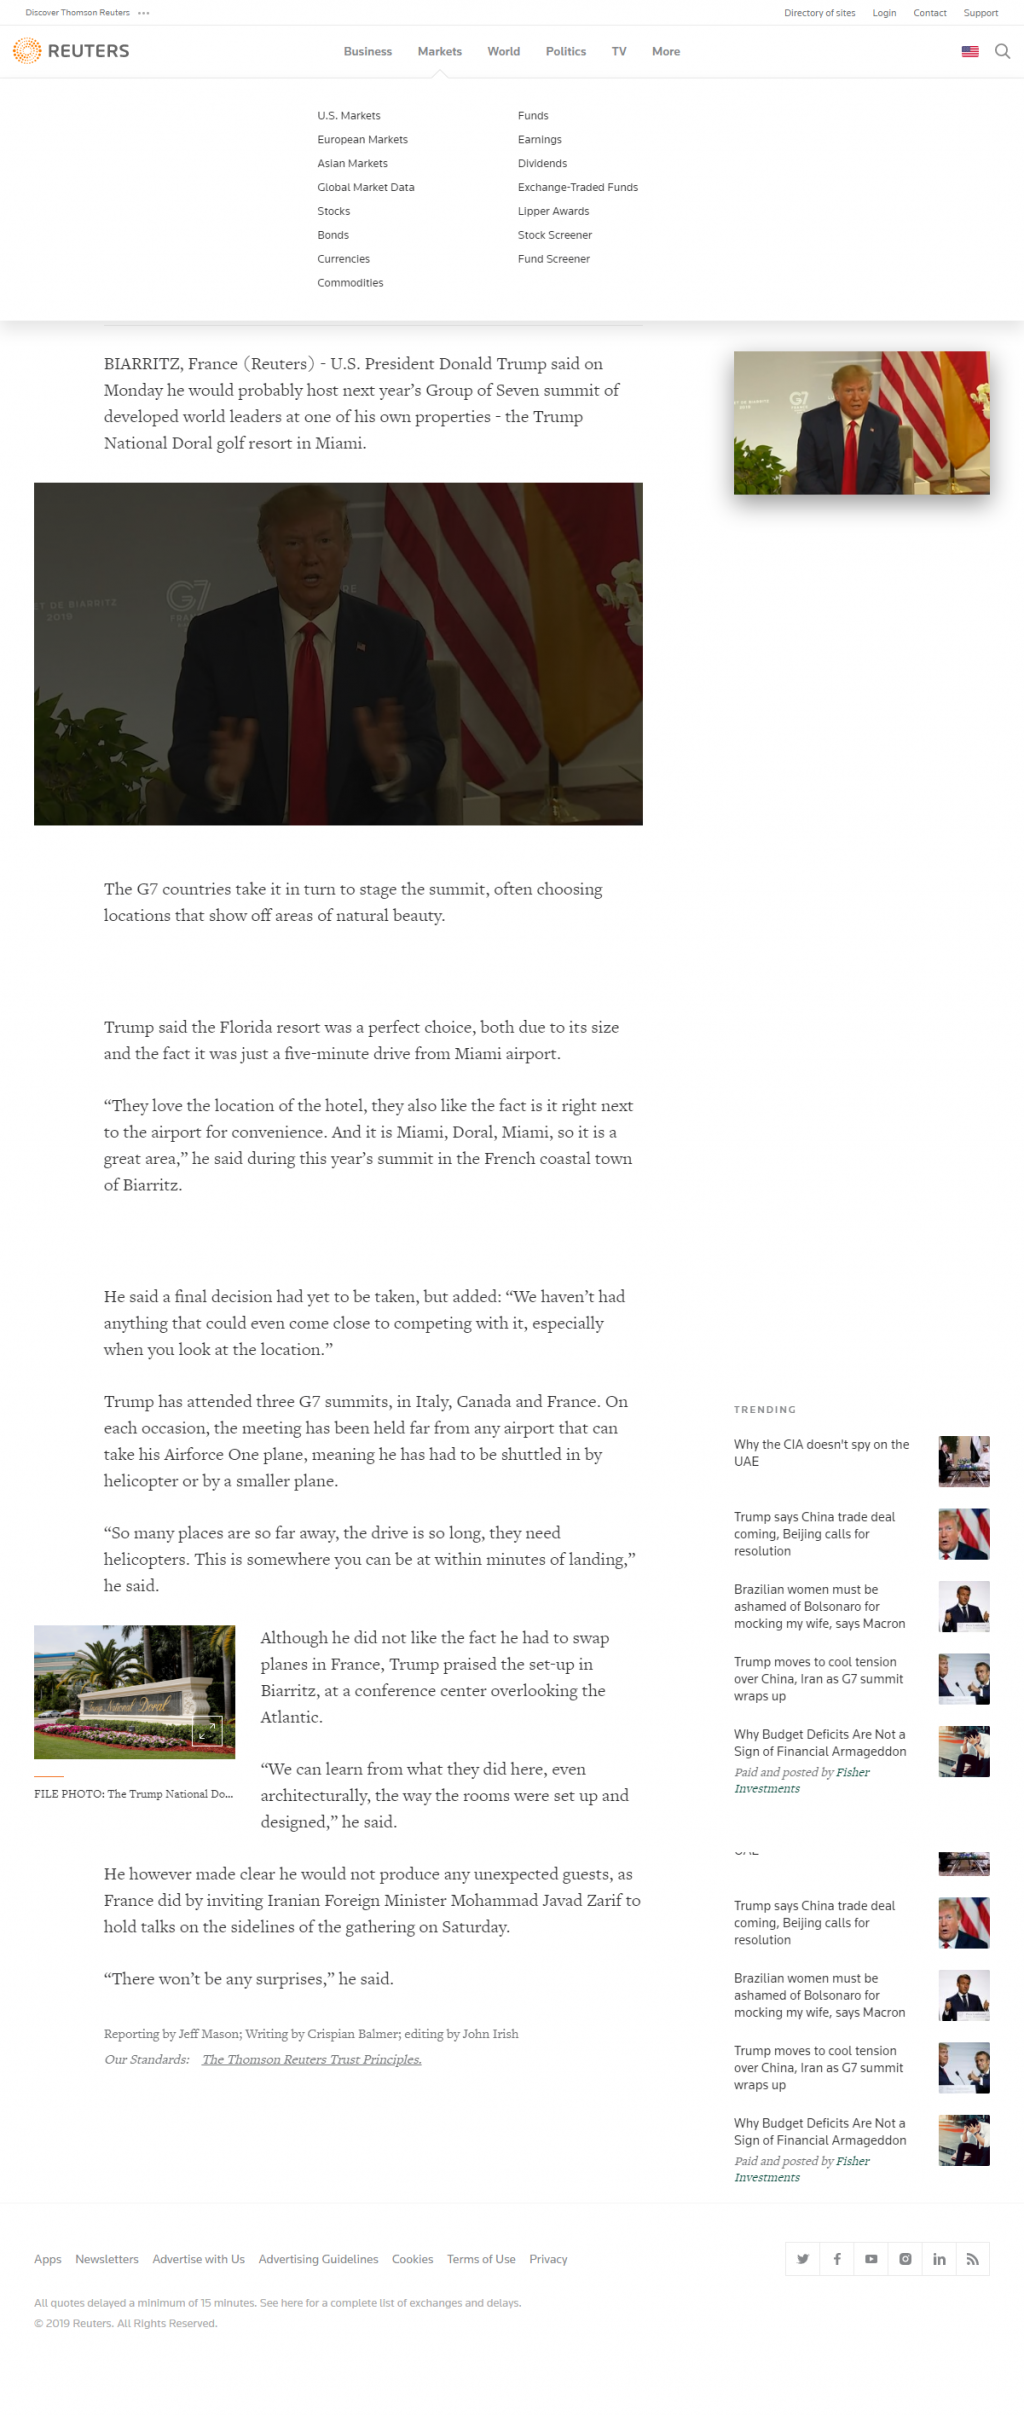 Reuters' article on Trump saying he may host the next G-7 at his Doral resort